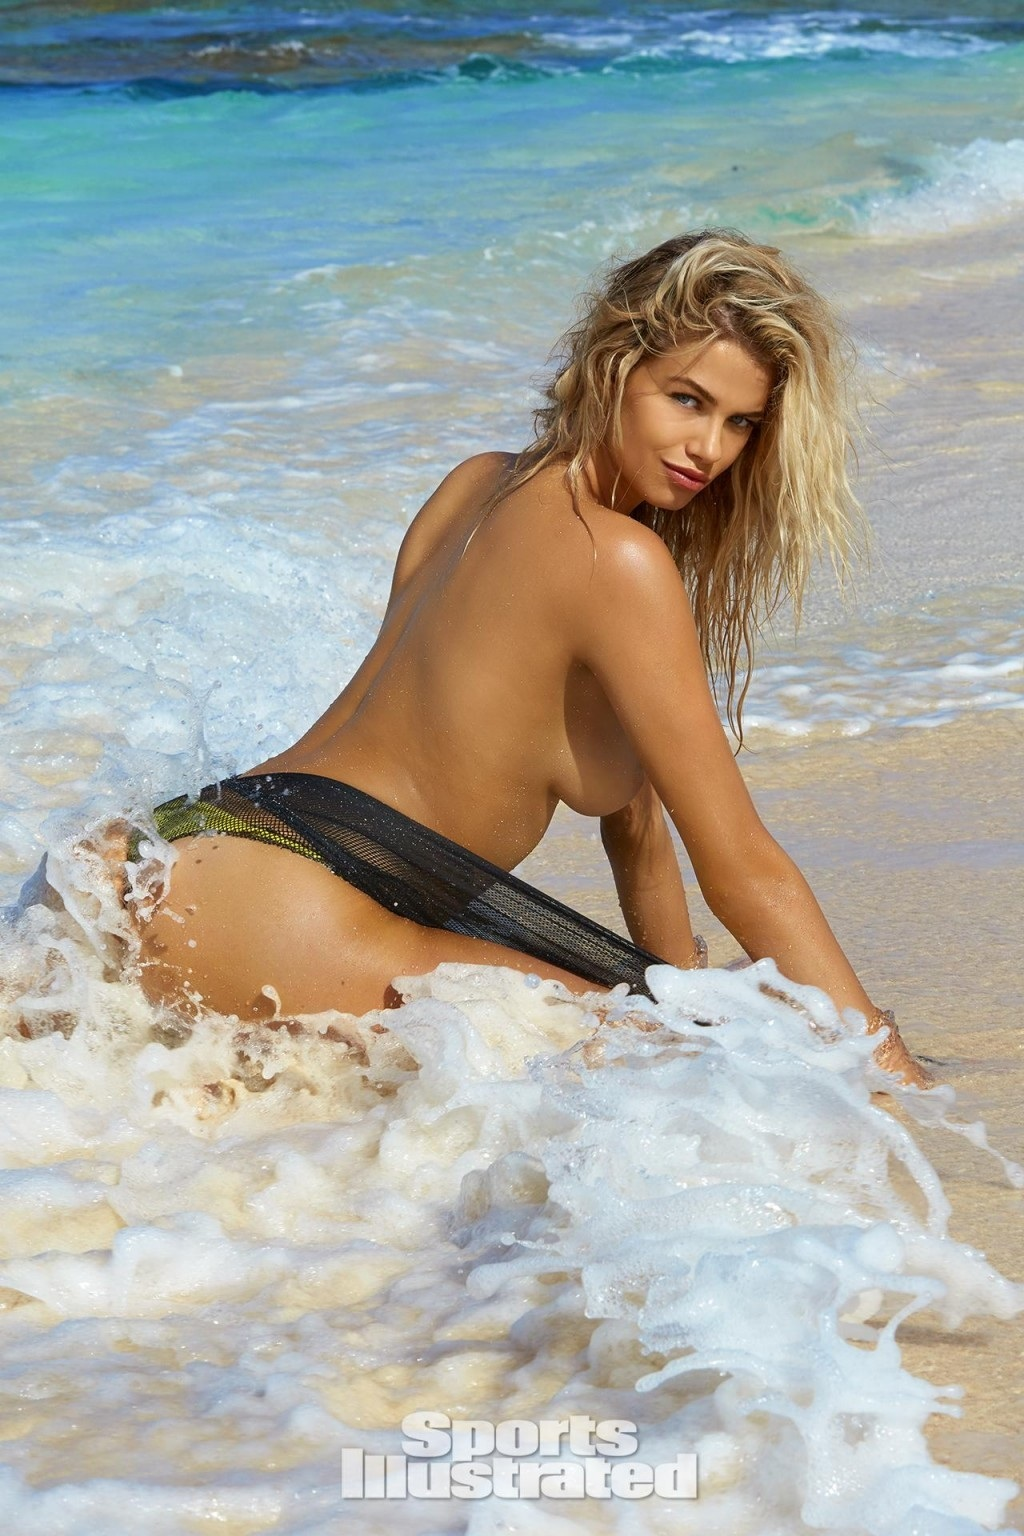 Hailey Clauson Photo Sports Illustrated Tk Rawwmfinal Hailey Clauson